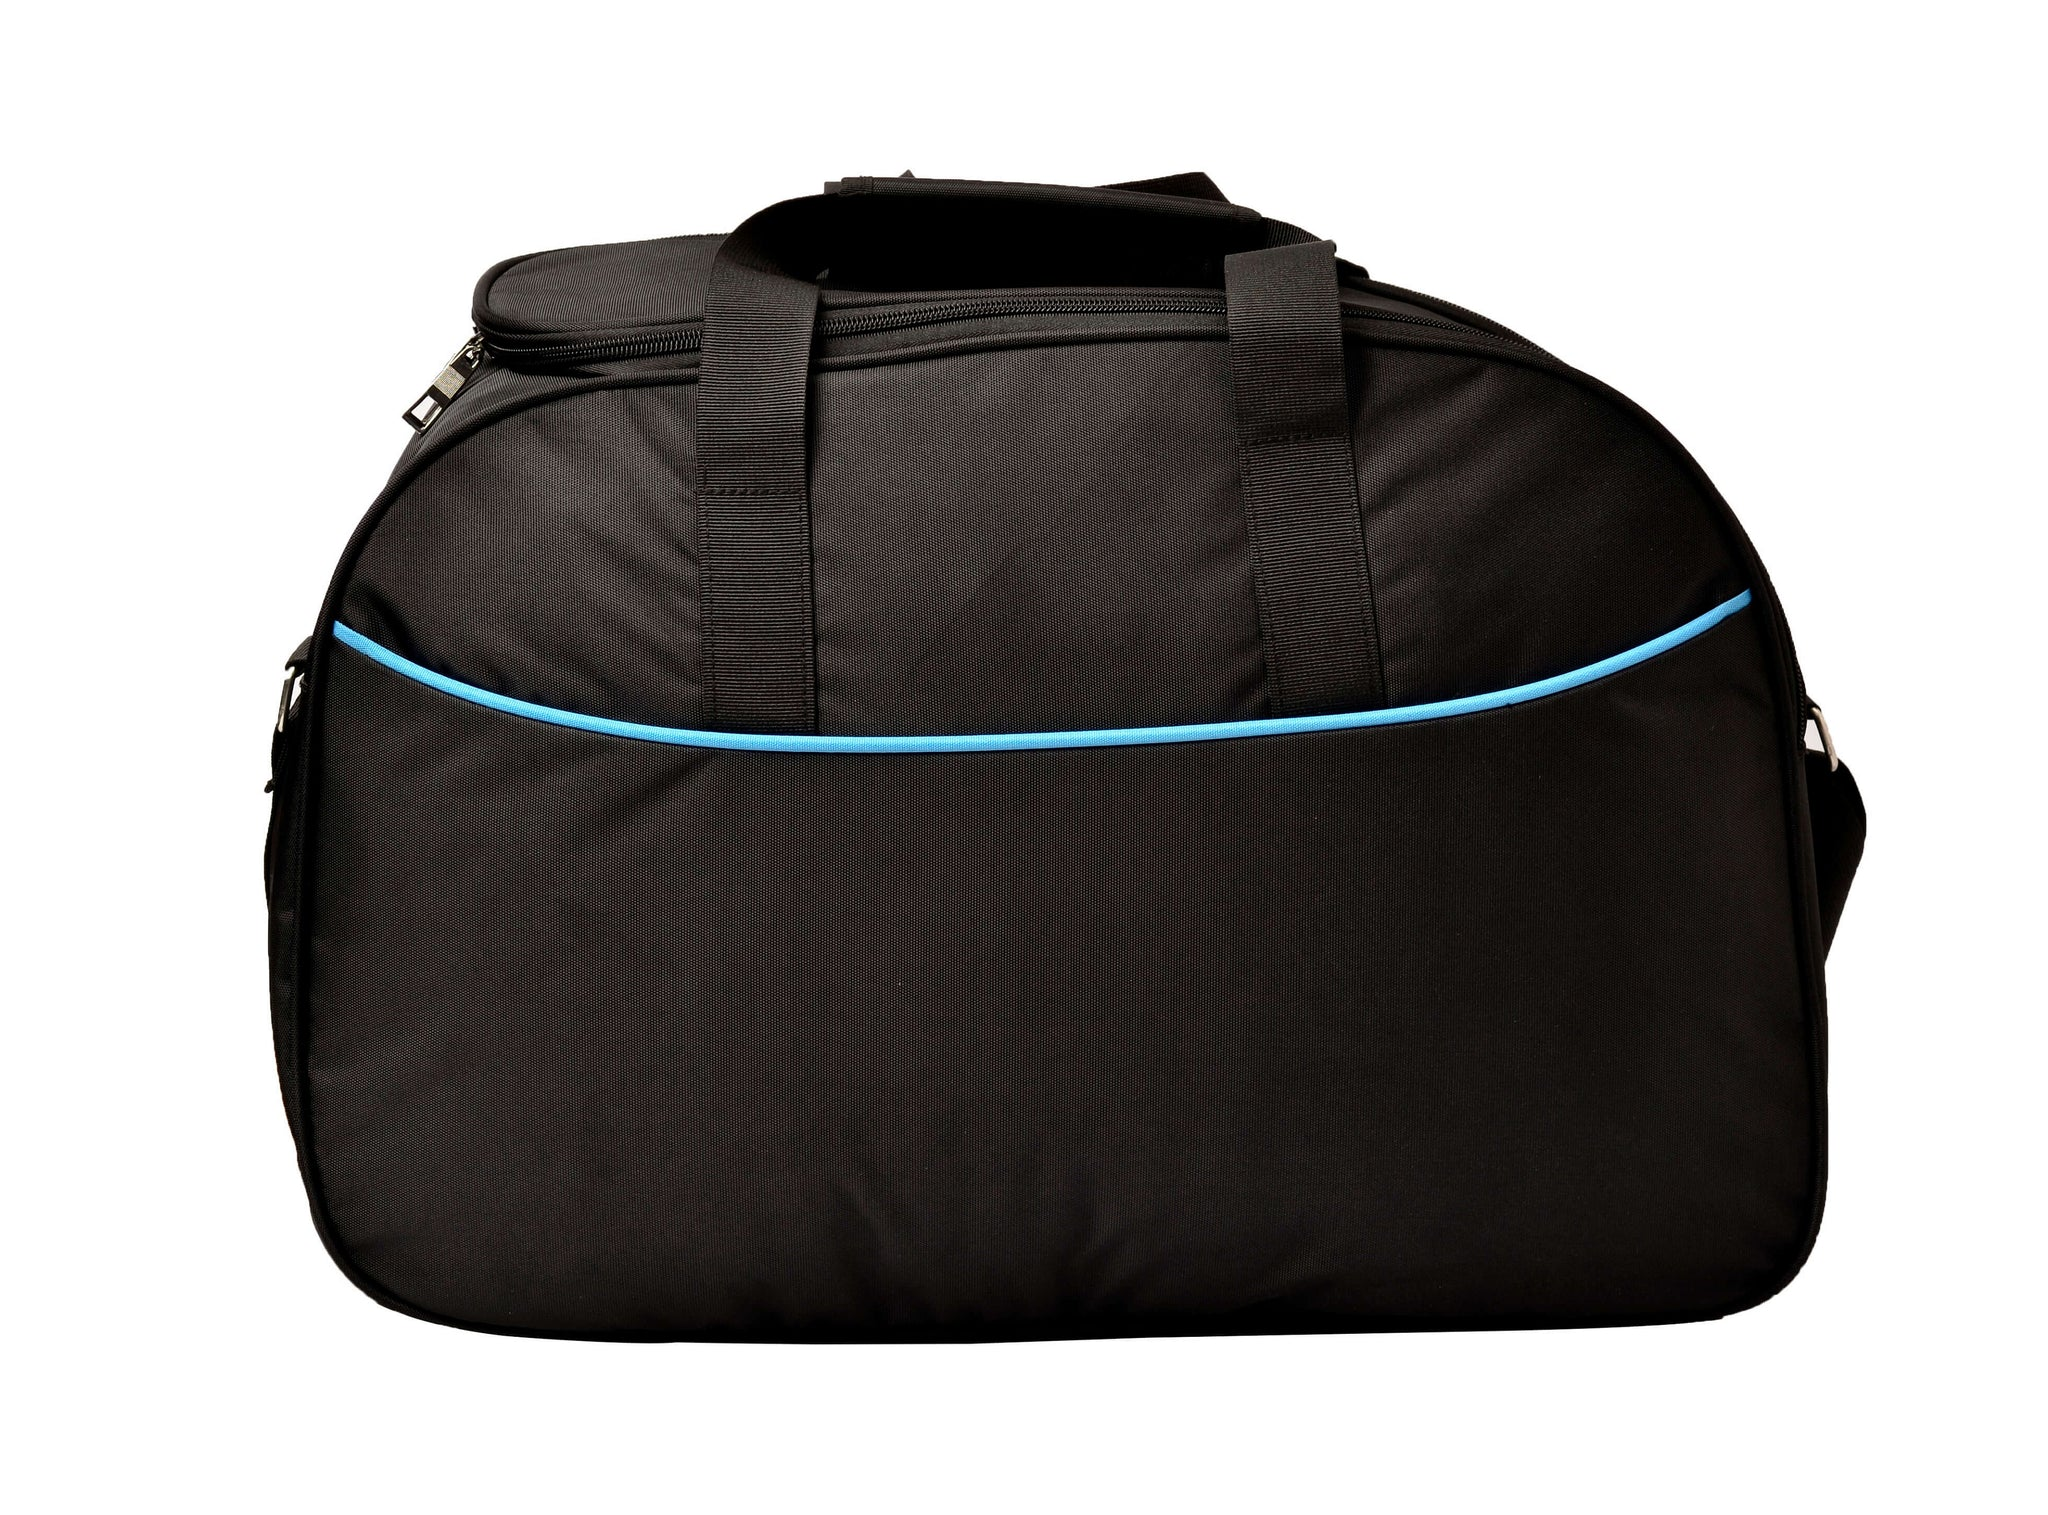 F Gear Maverick Black Blue 45 Liter Travel Duffel (2878)